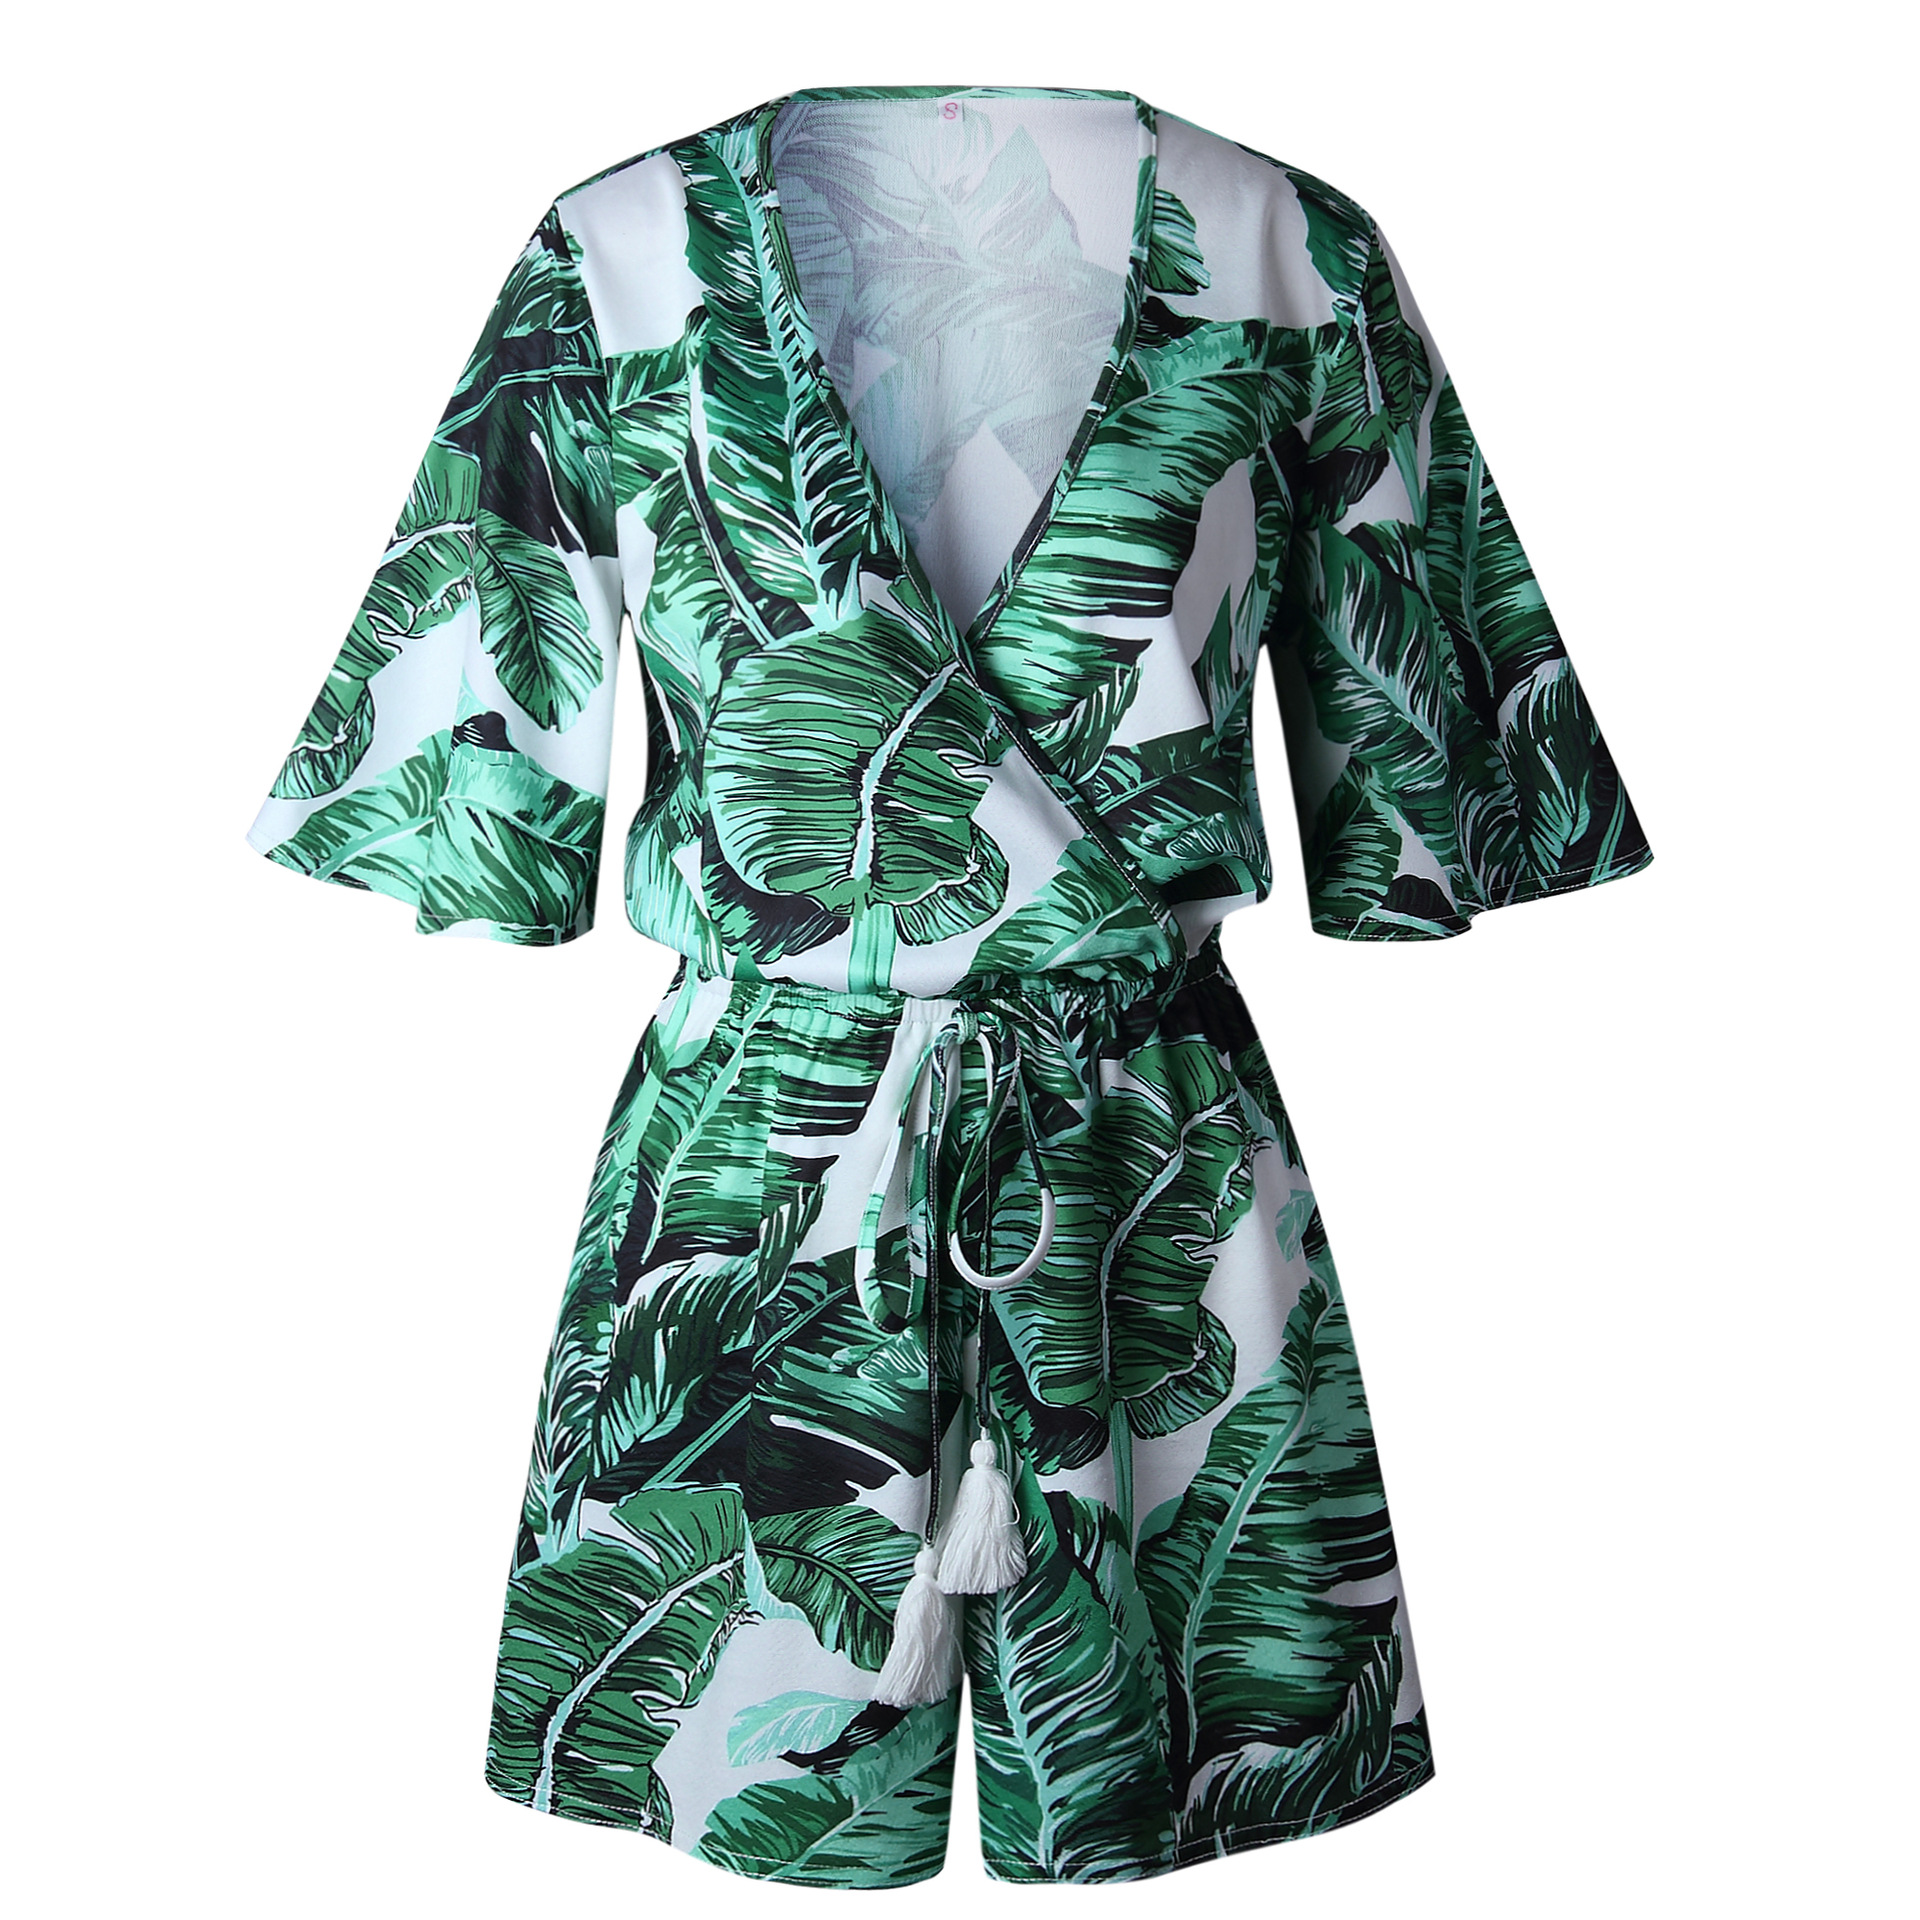 2019 Deep V Neck Summer Bodysuits Women Green Leaves Print Beach Playsuit Female Short Overalls Jumpsuit Casual Boho Bodysuit in Rompers from Women 39 s Clothing